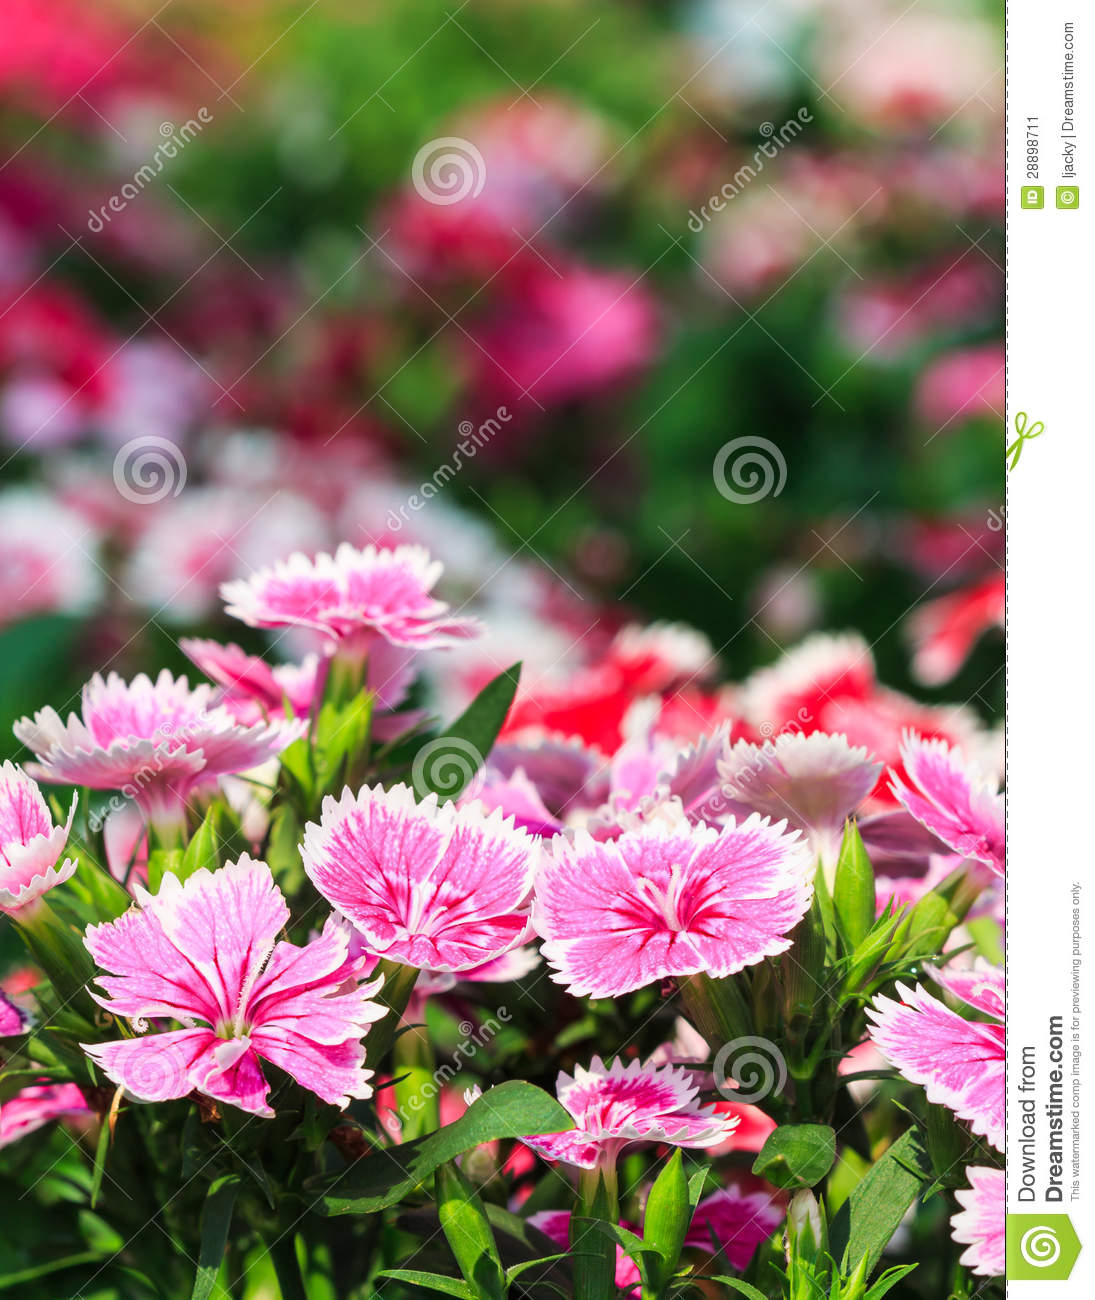 Beautiful Pink Flowers In The Garden Stock Image Image Of Grass